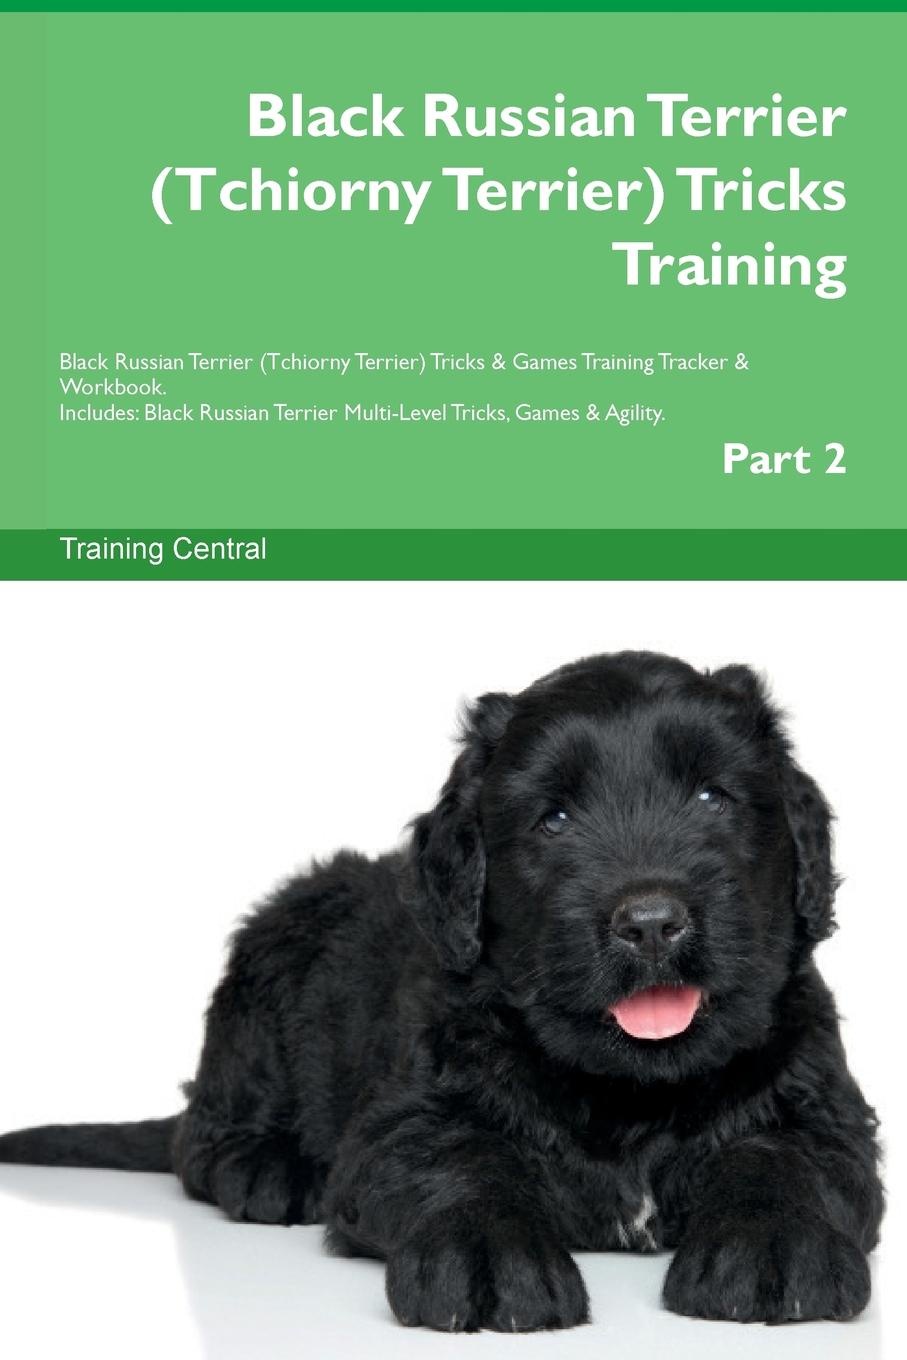 Training Central Black Russian Terrier (Tchiorny Terrier) Tricks Training Black Russian Terrier (Tchiorny Terrier) Tricks & Games Training Tracker & Workbook. Includes. Black Russian Terrier Multi-Level Tricks, Games & Agility. Part 2 training central cesky terrier tricks training cesky terrier tricks